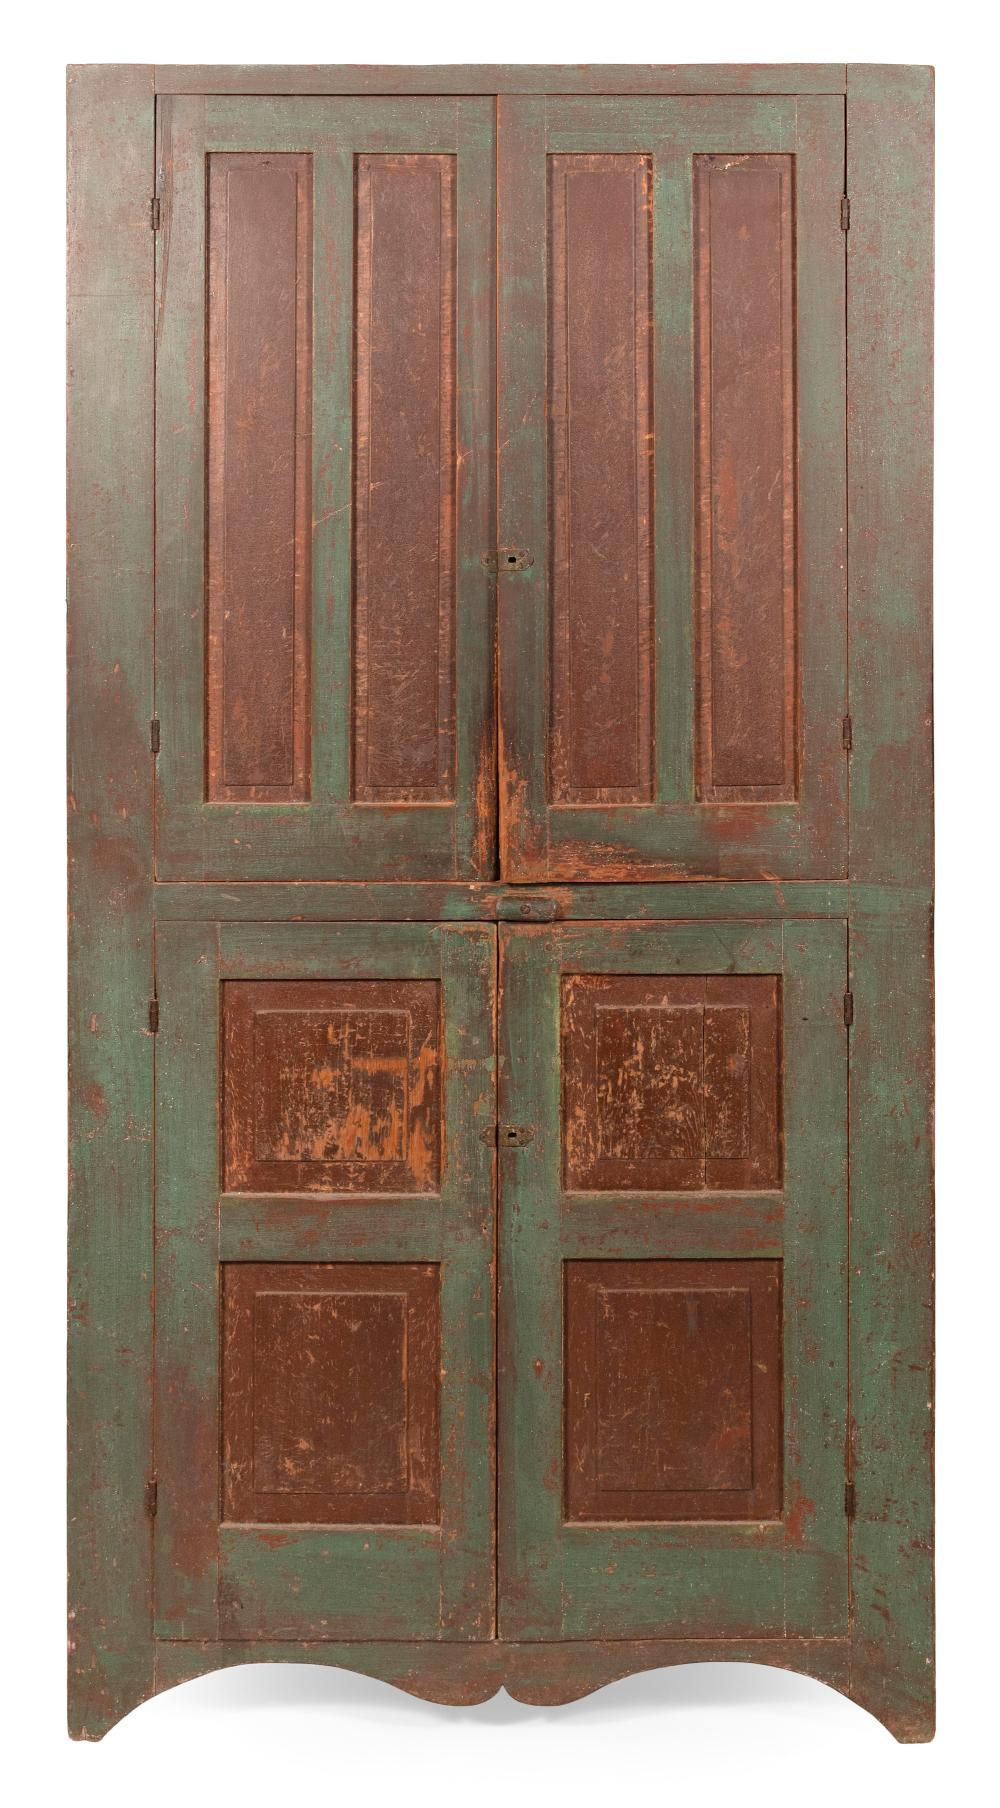 """ONE-PART CUPBOARD America, 19th Century Height approx. 85"""". Width 43.5"""". Depth 15.5""""."""